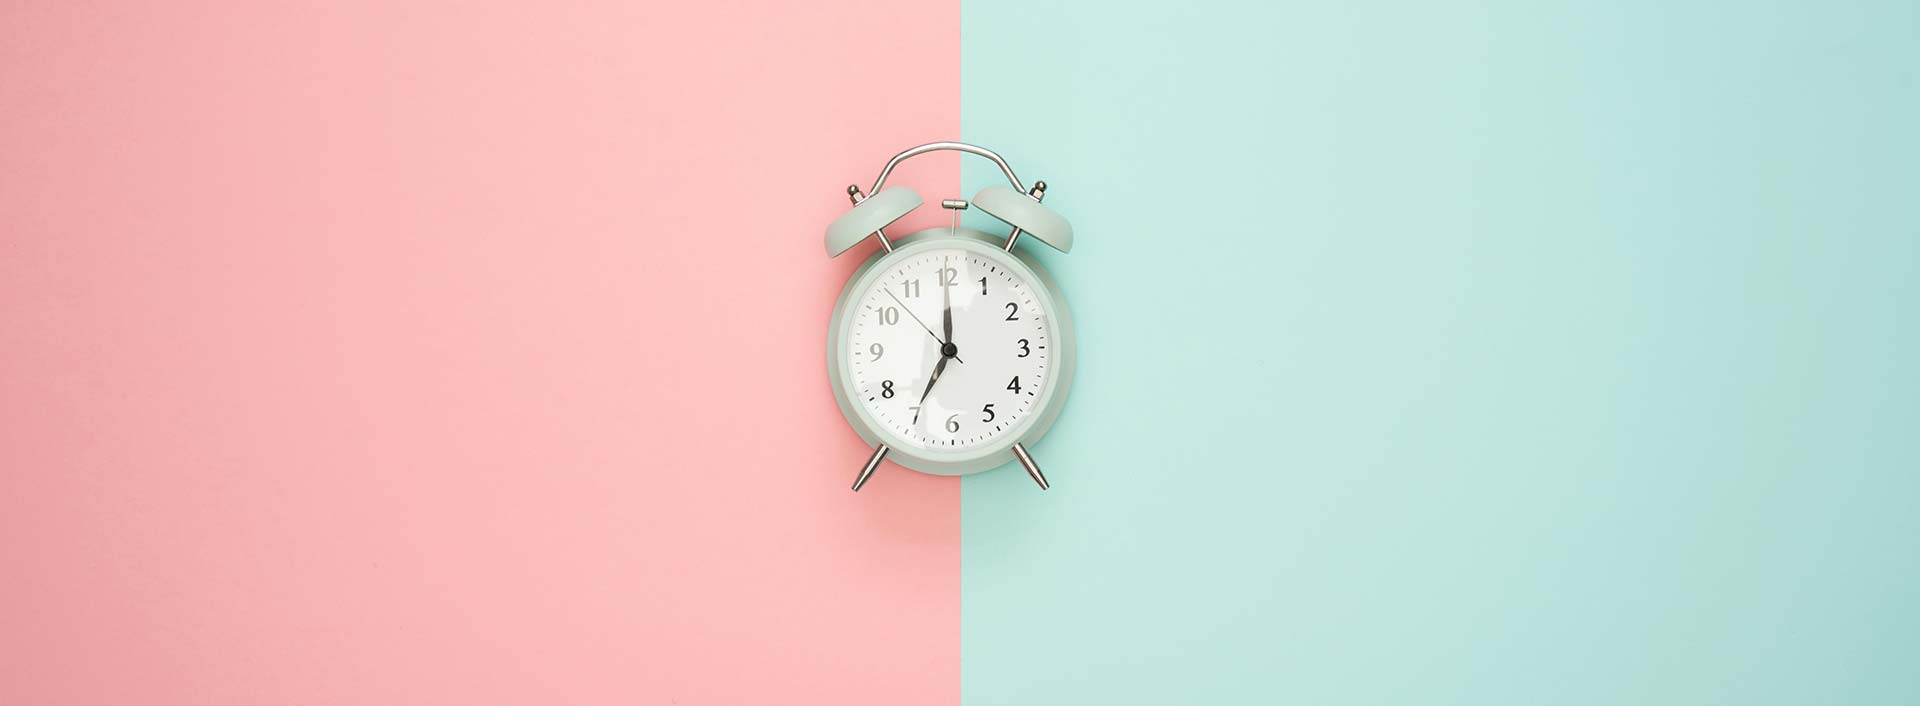 Analogue alarm clock on a pink and turquoise background